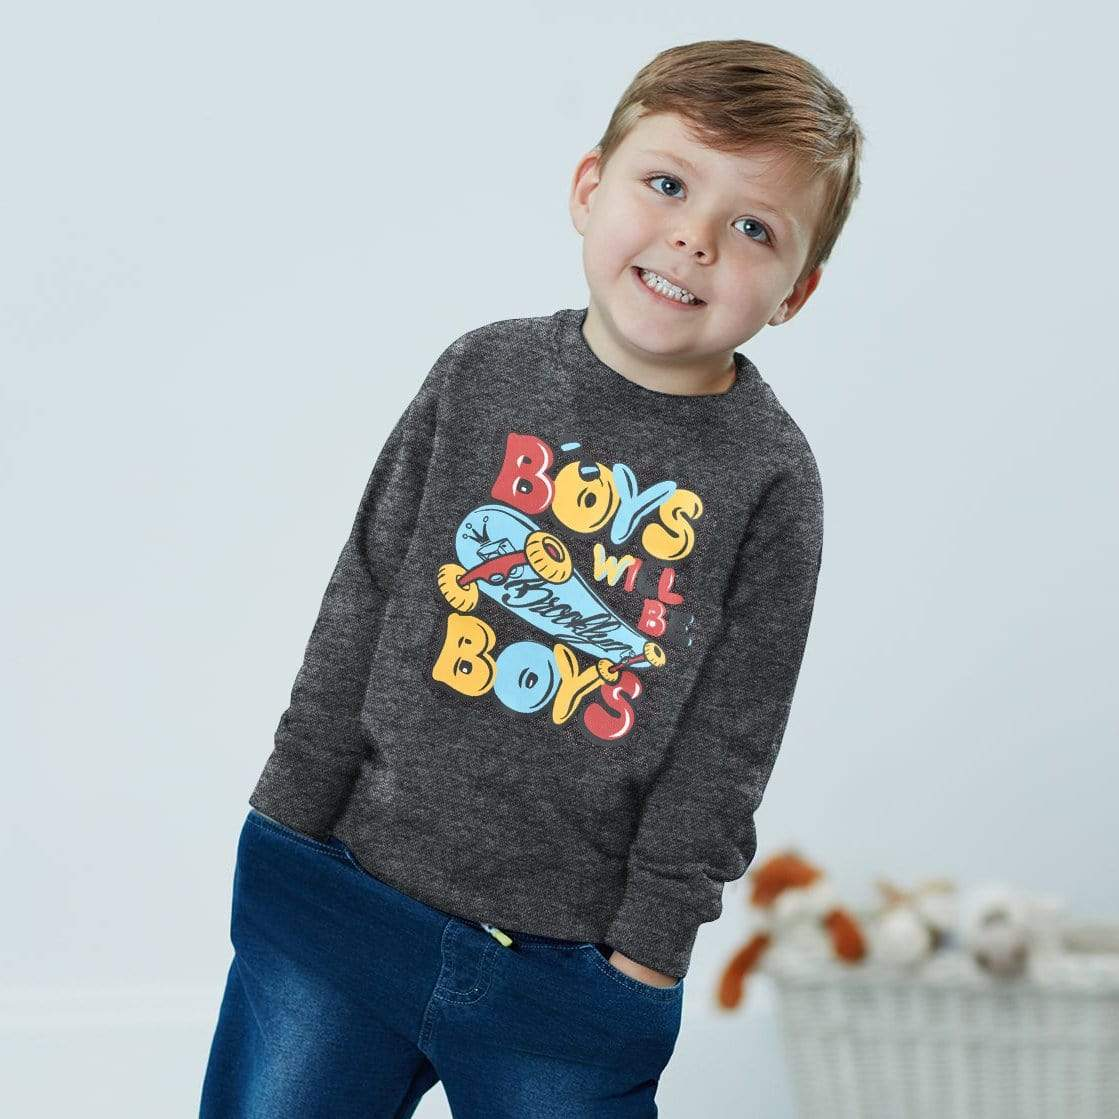 Stone Harbor Kid's Sweatshirt Charcoal / 2-3 Years Stone Harbor Boys Will Be Boys Crew Neck Sweat Shirt